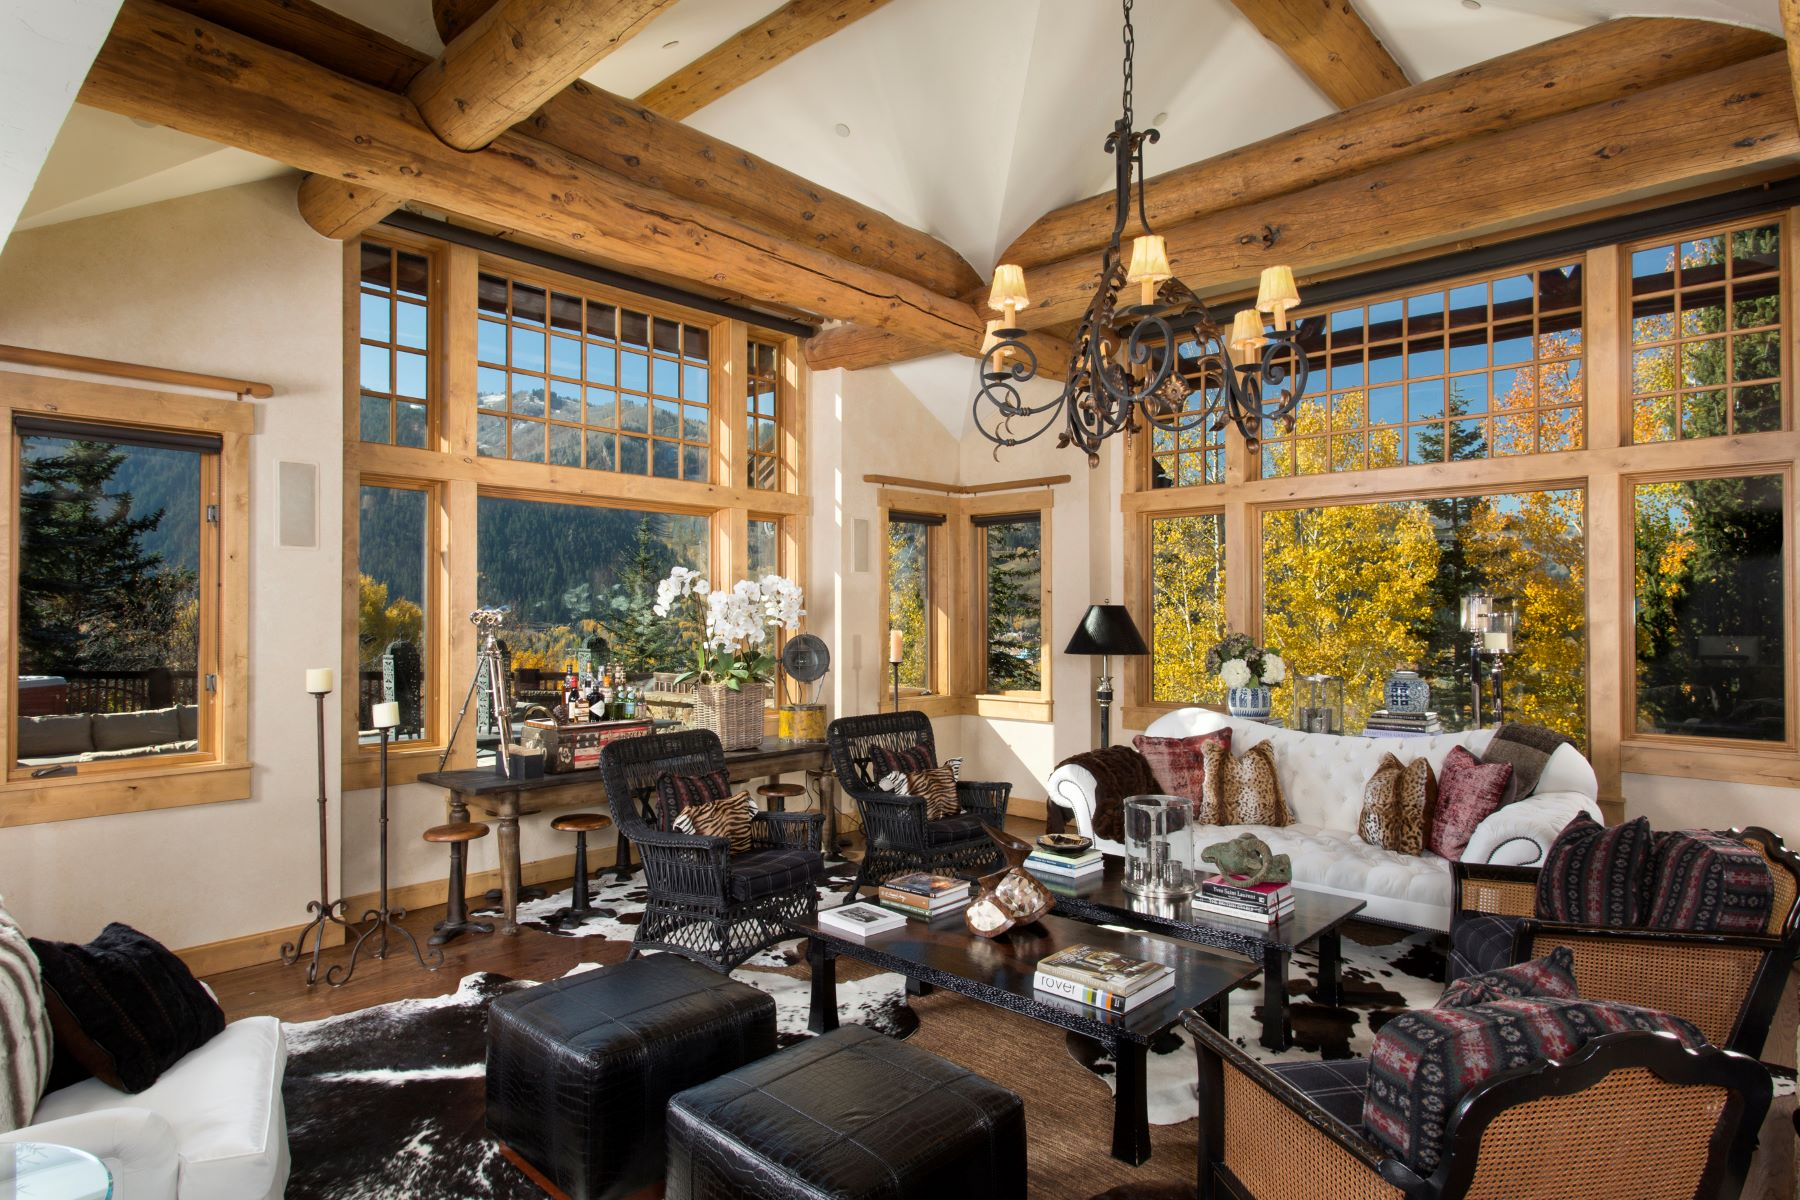 Single Family Home for Rent at 201 Silverlode Drive 201 Silverlode Drive Aspen, Colorado 81611 United States